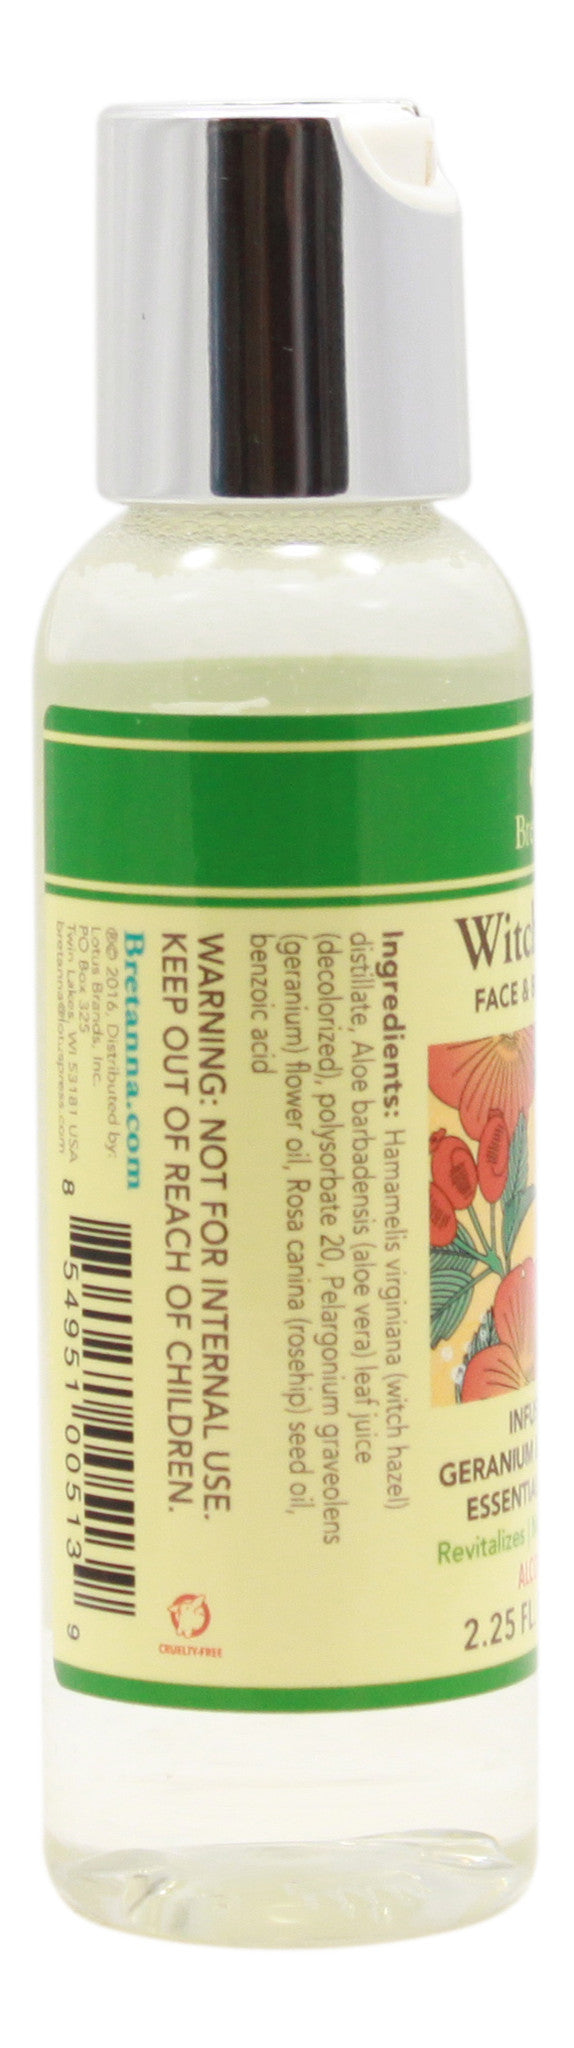 Witch Hazel Geranium & Rose Hip - 2.25 fl oz - Info